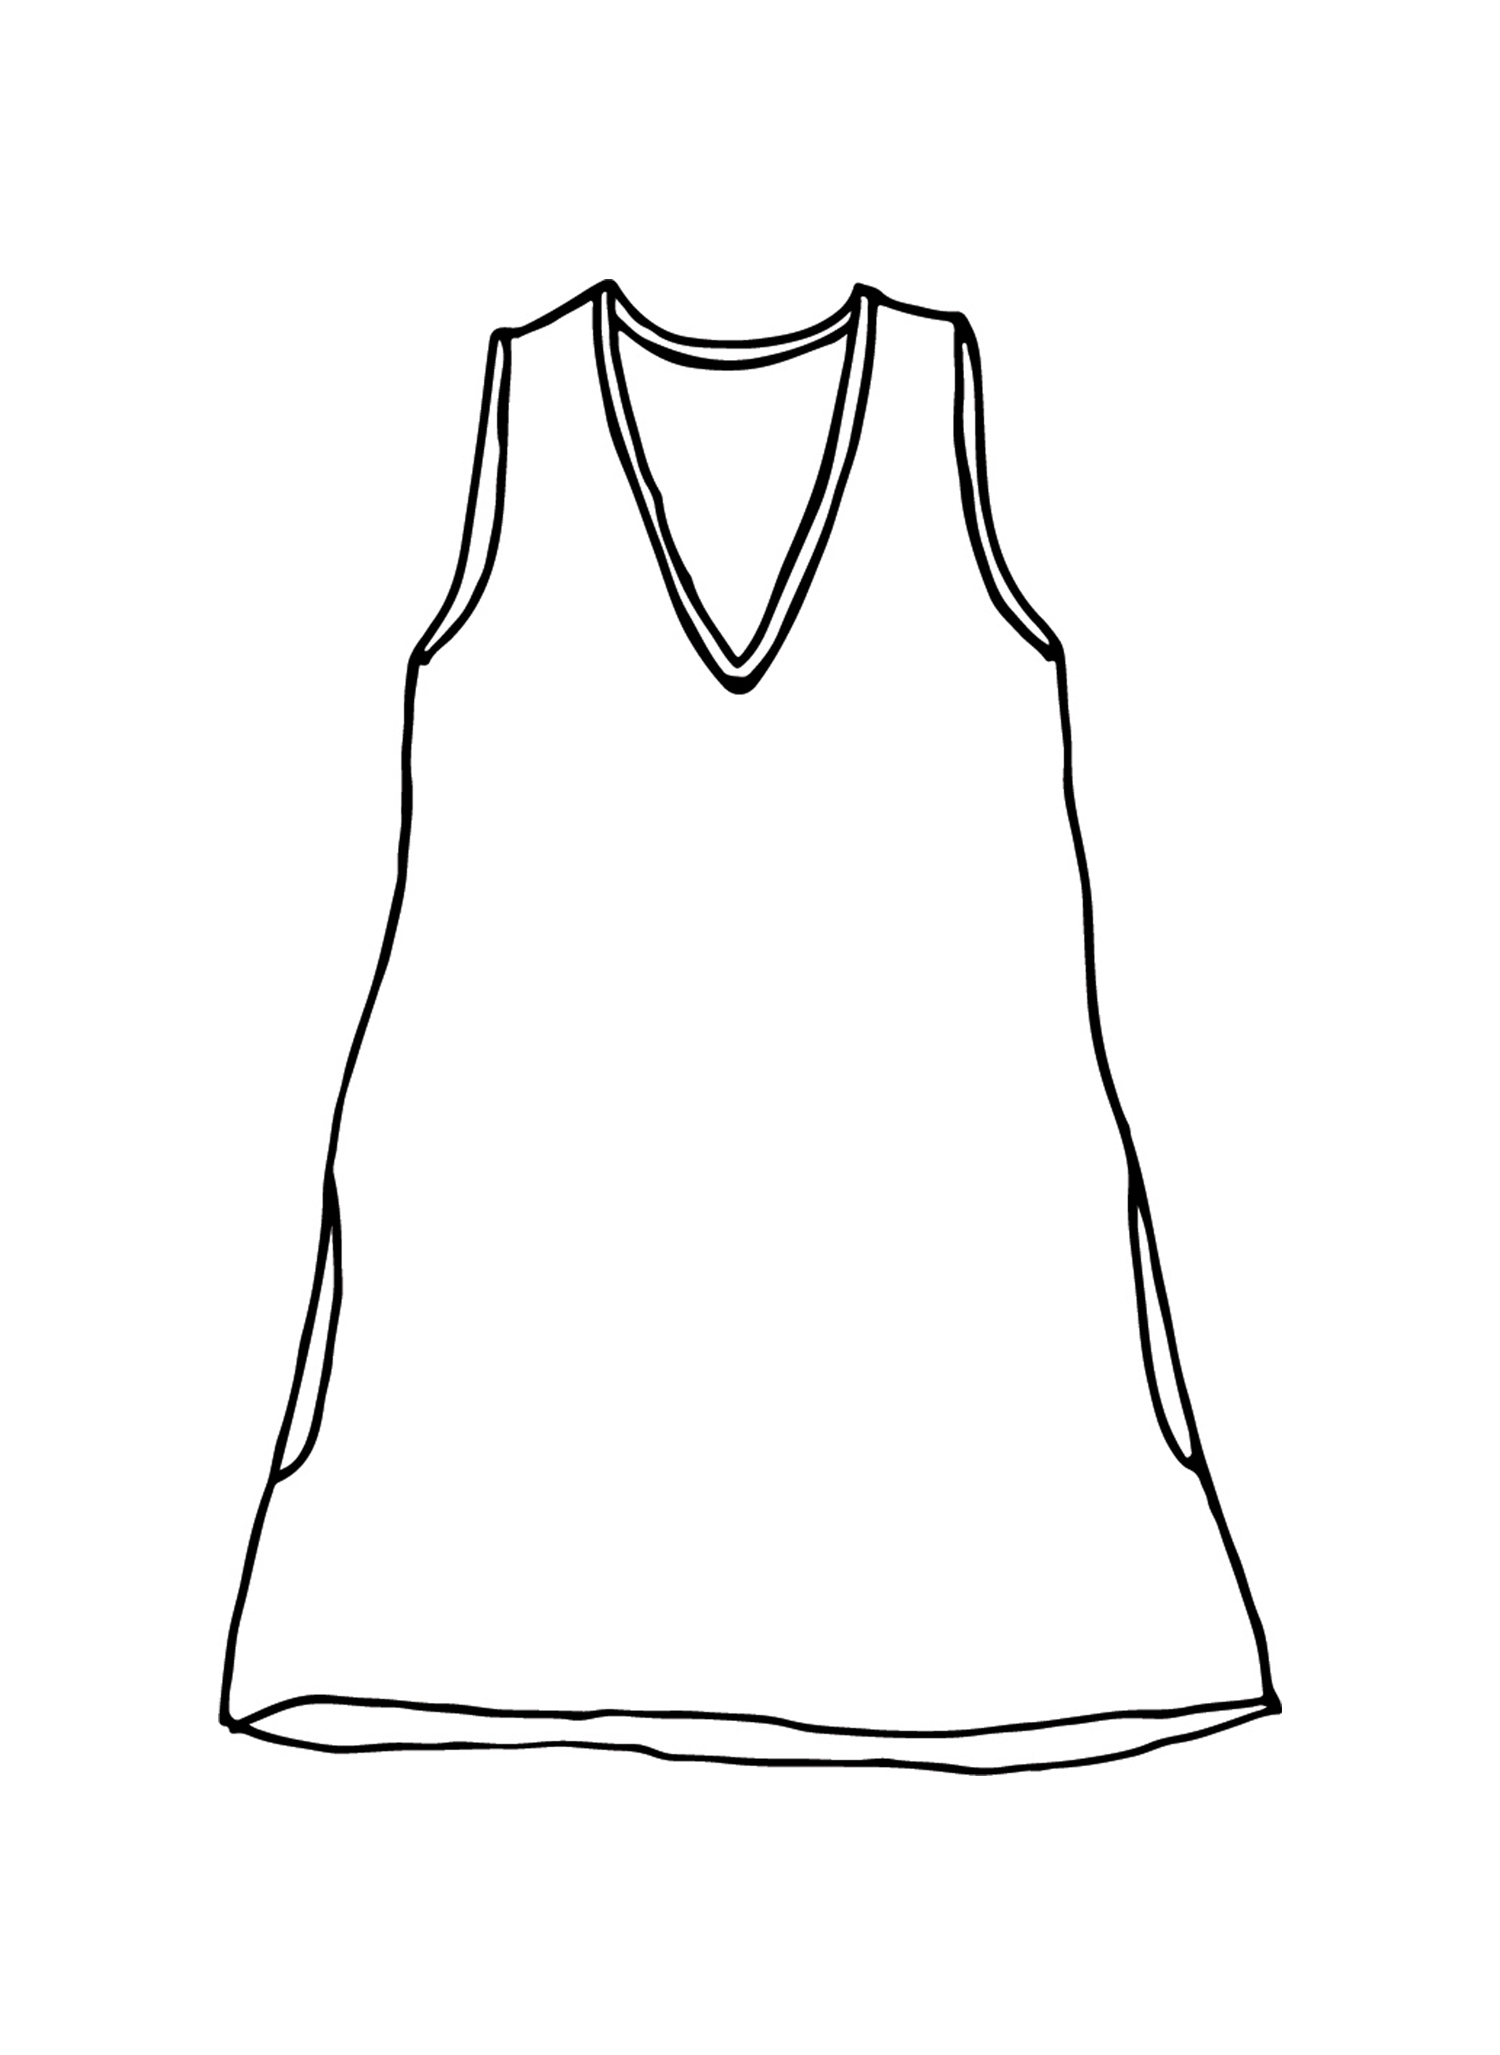 V-Neck Tunic sketch image